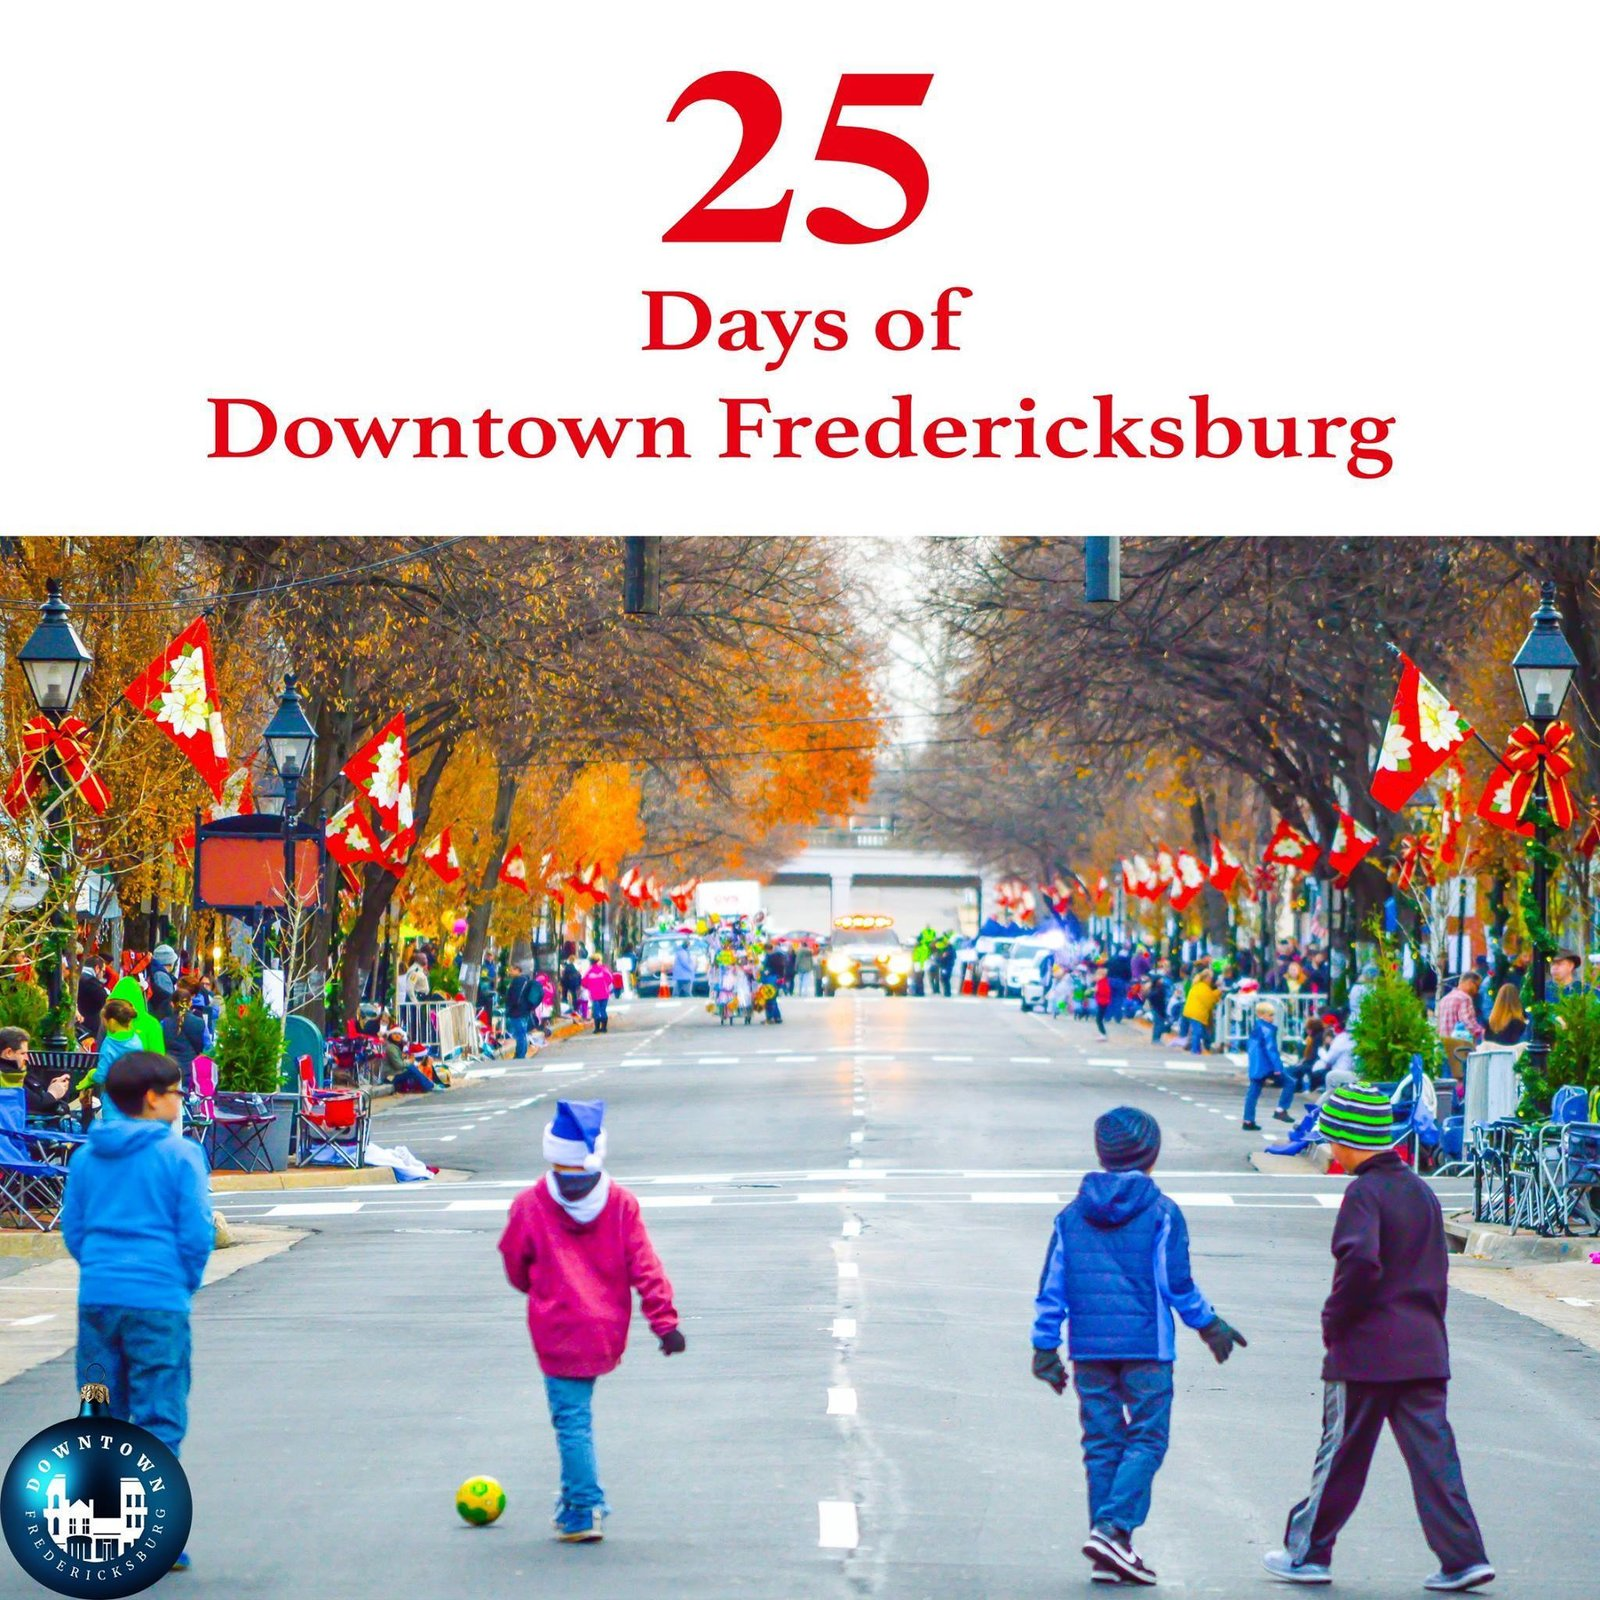 Gift Twenty-five The last gift on our list is something you can't buy. It's the gift of family and friends wrapped in love.  Merry Christmas from Downtown Fredericksburg. https://www.facebook.com/DowntownFredericksburg/  25 Days of Downtown Fredericksburg by Downtown Fredericksburg